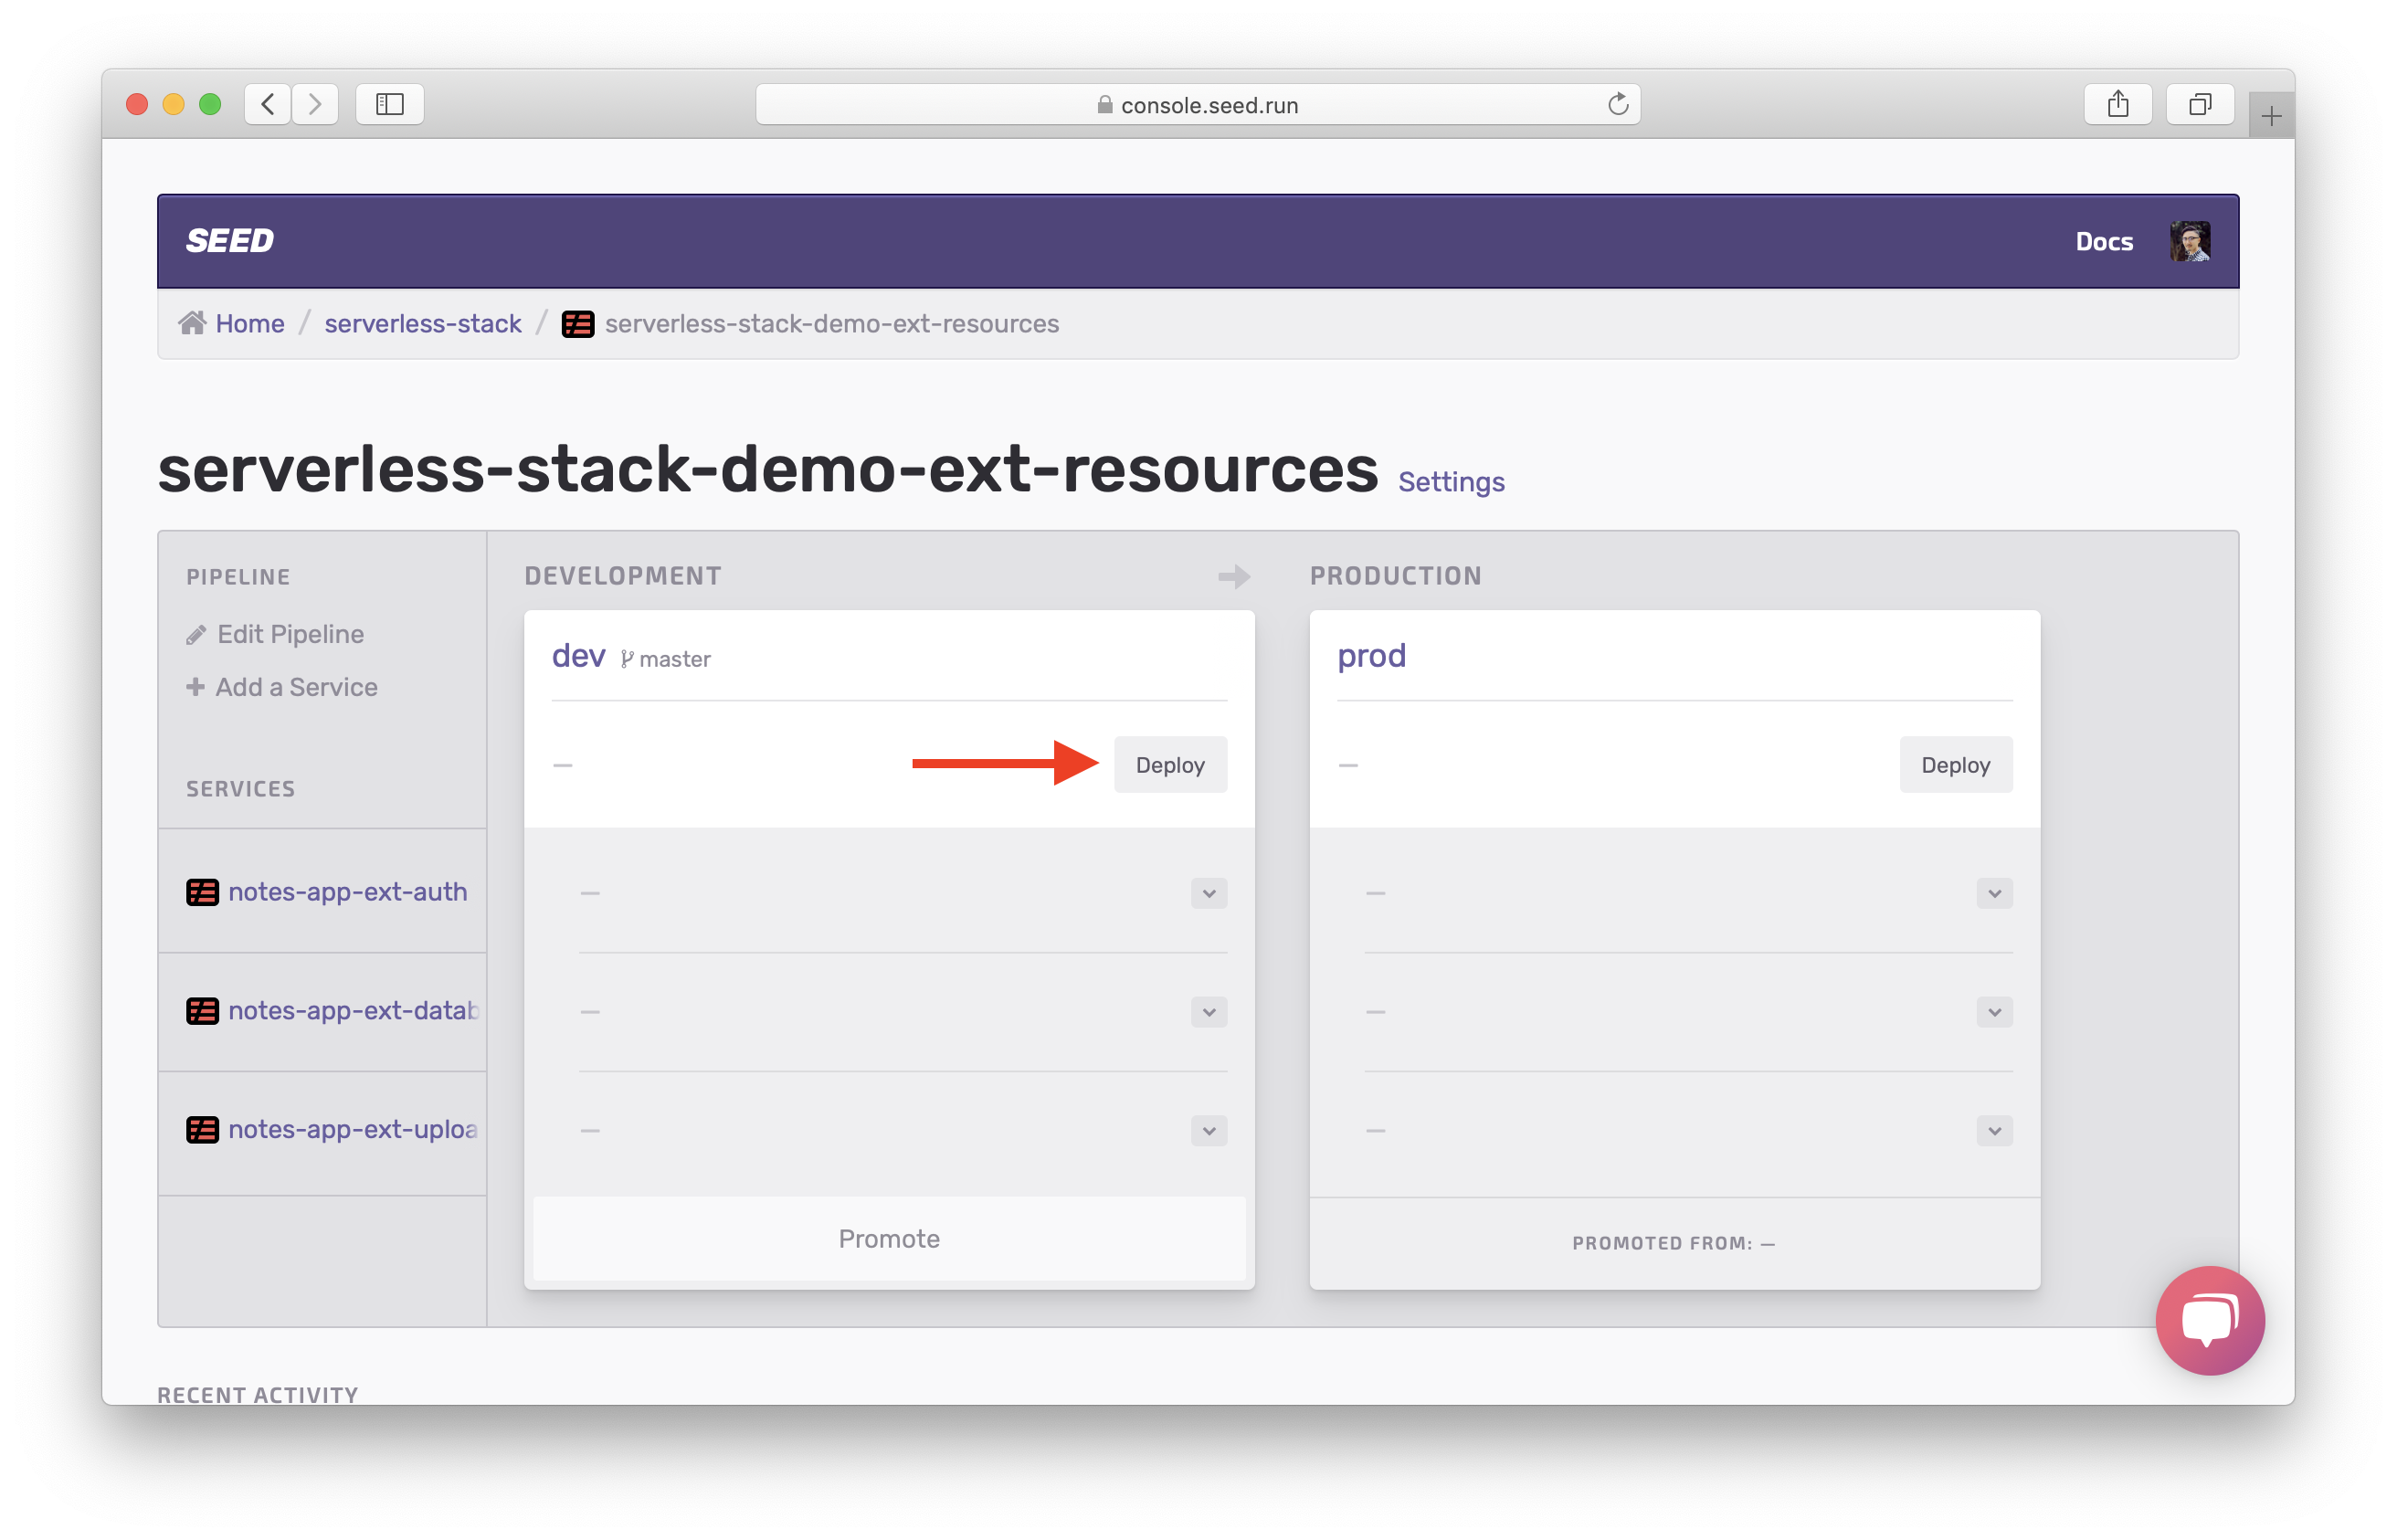 Select Deploy in dev stage